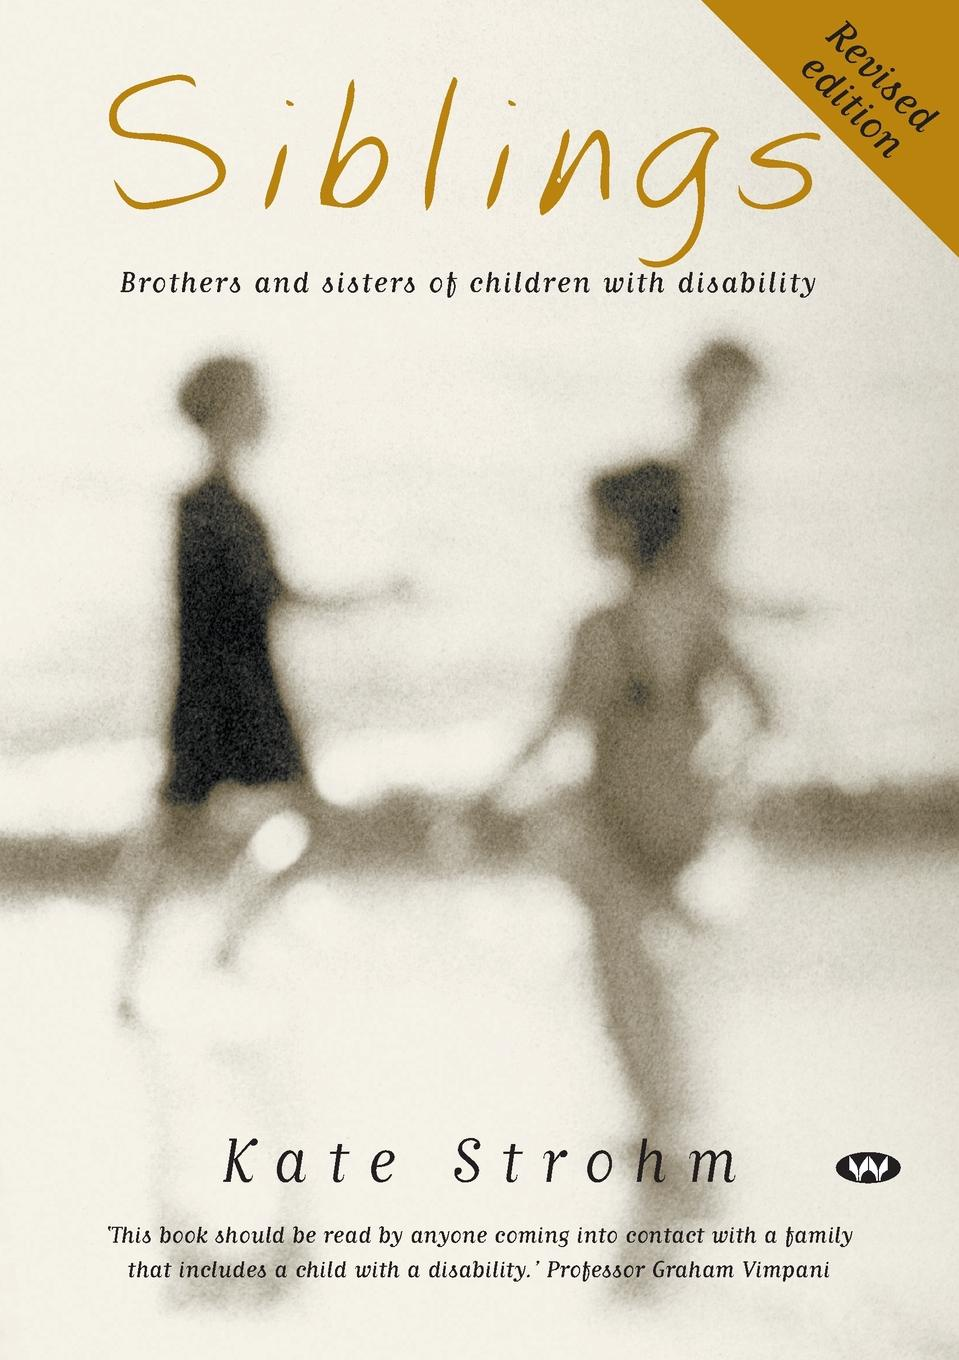 Kate Strohm Siblings. Brothers and sisters of children with disability